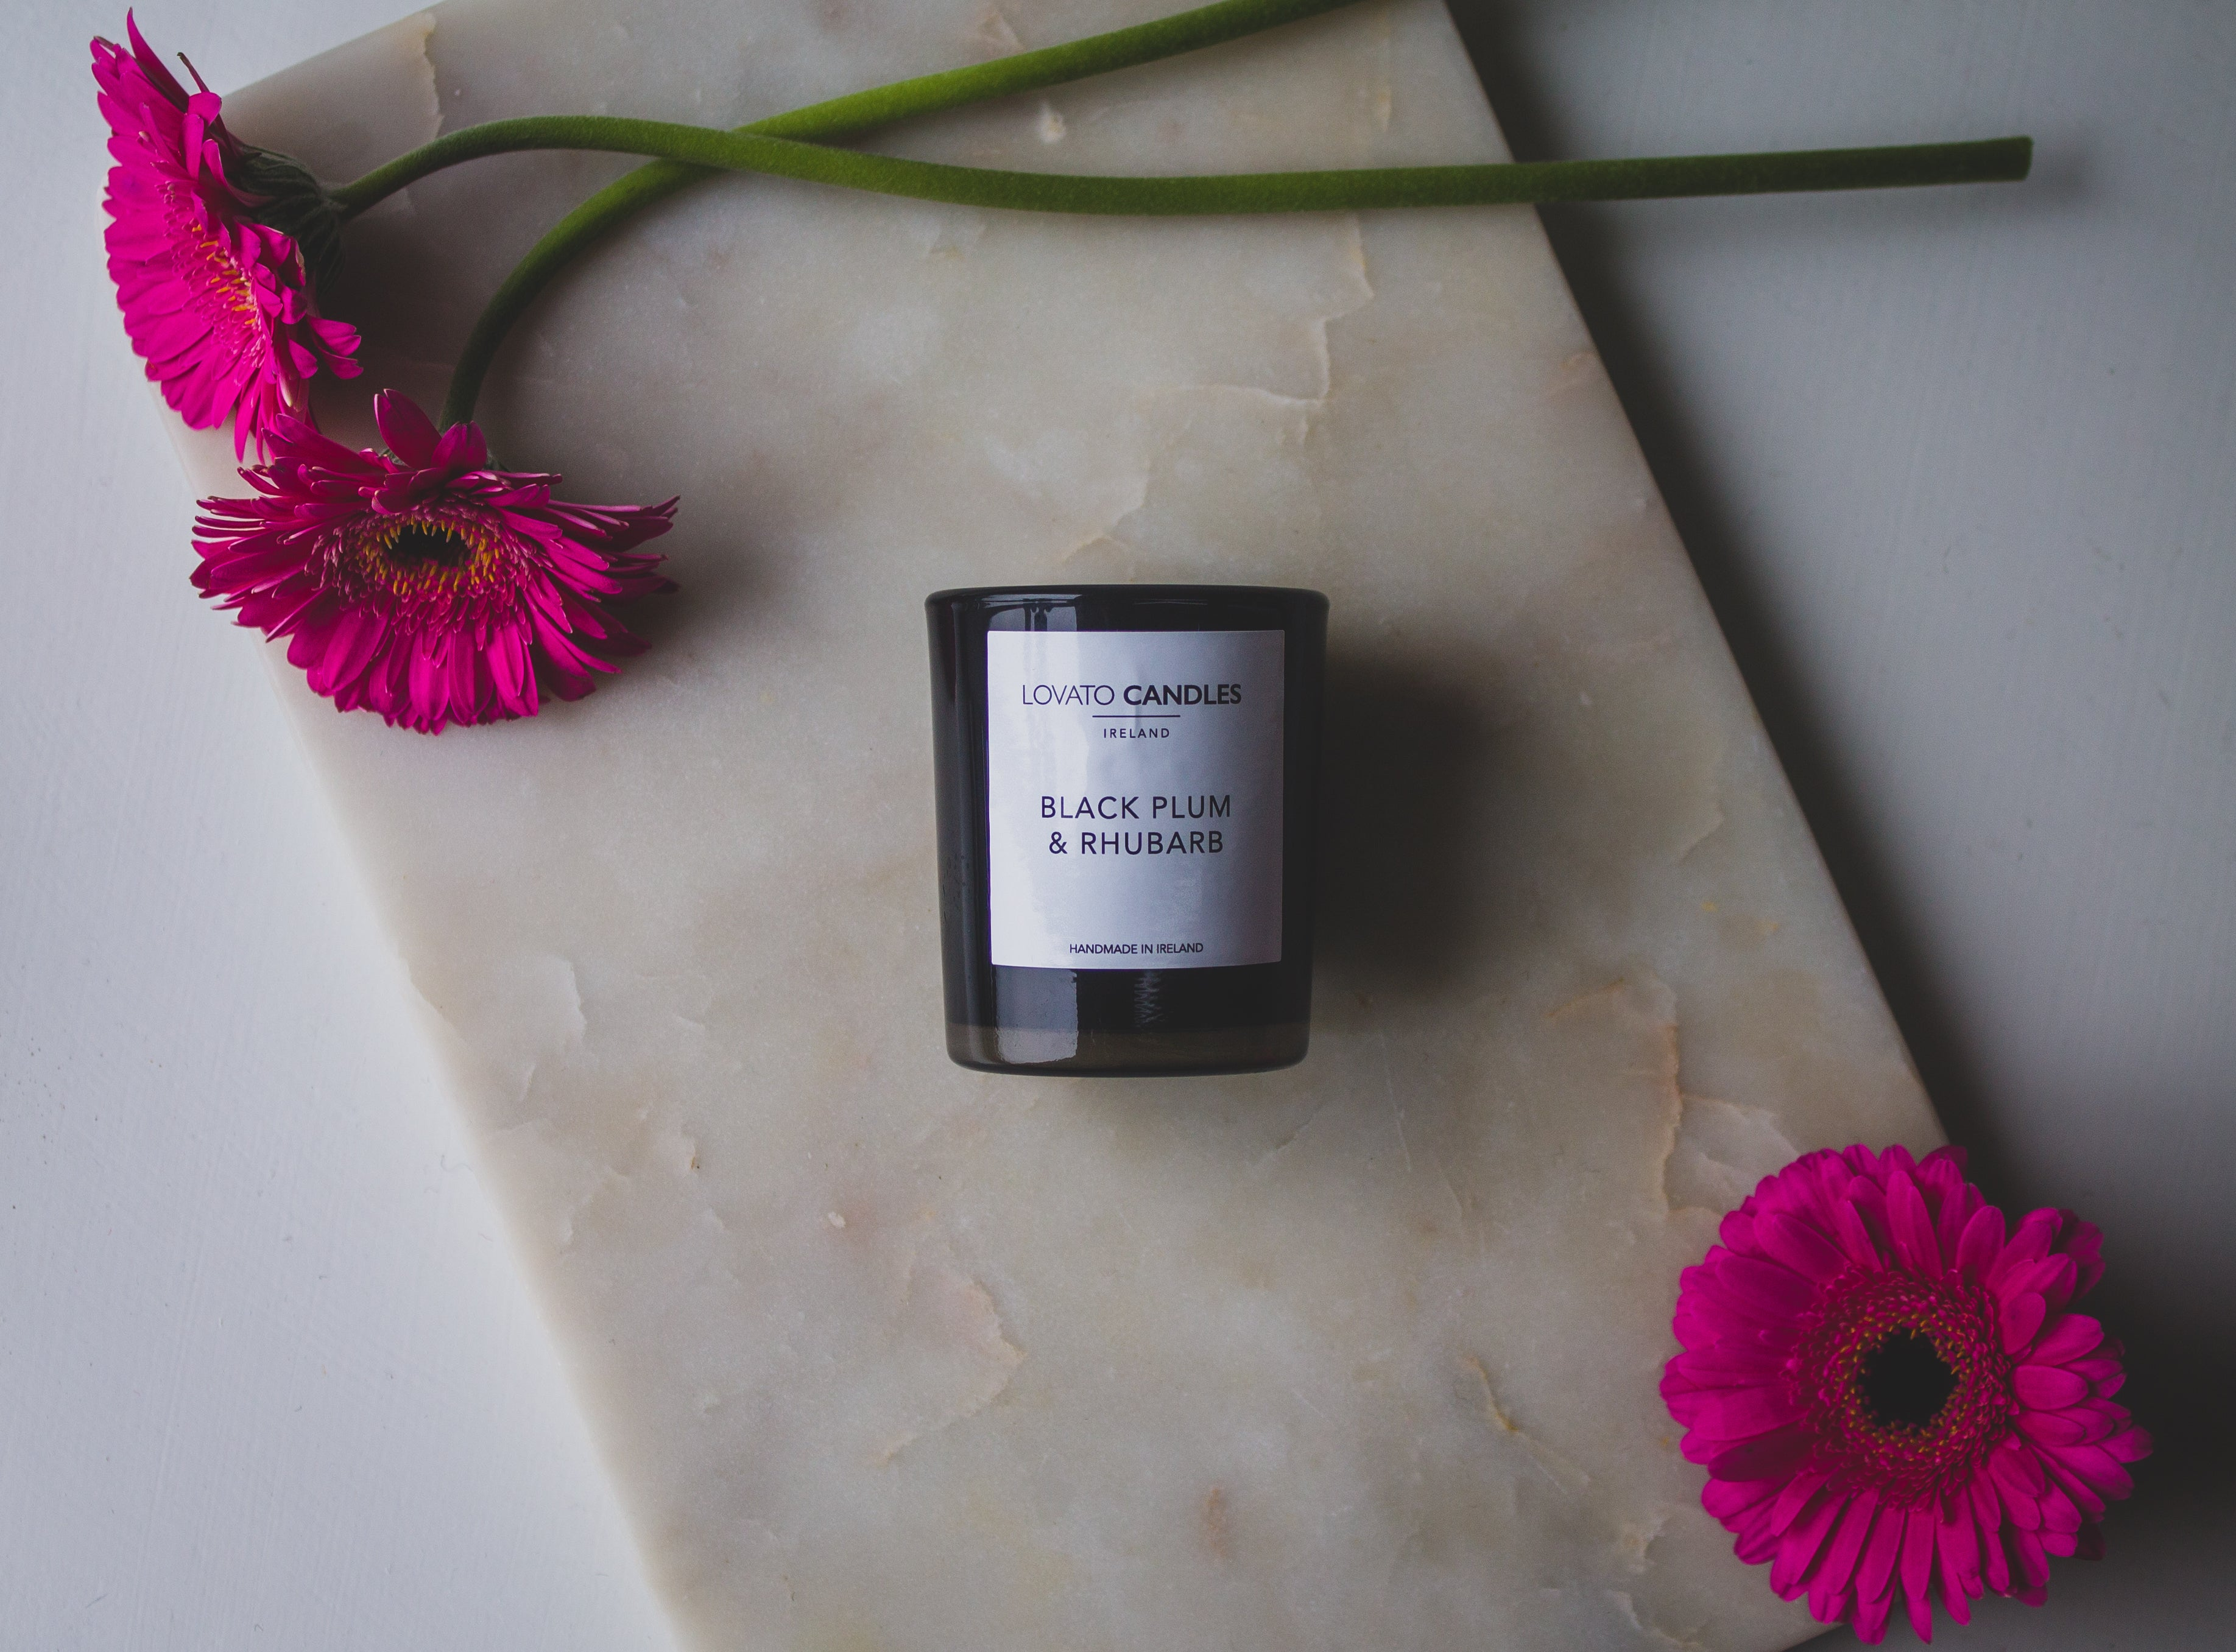 Black Votive Candle - Black Plum & Rhubarb